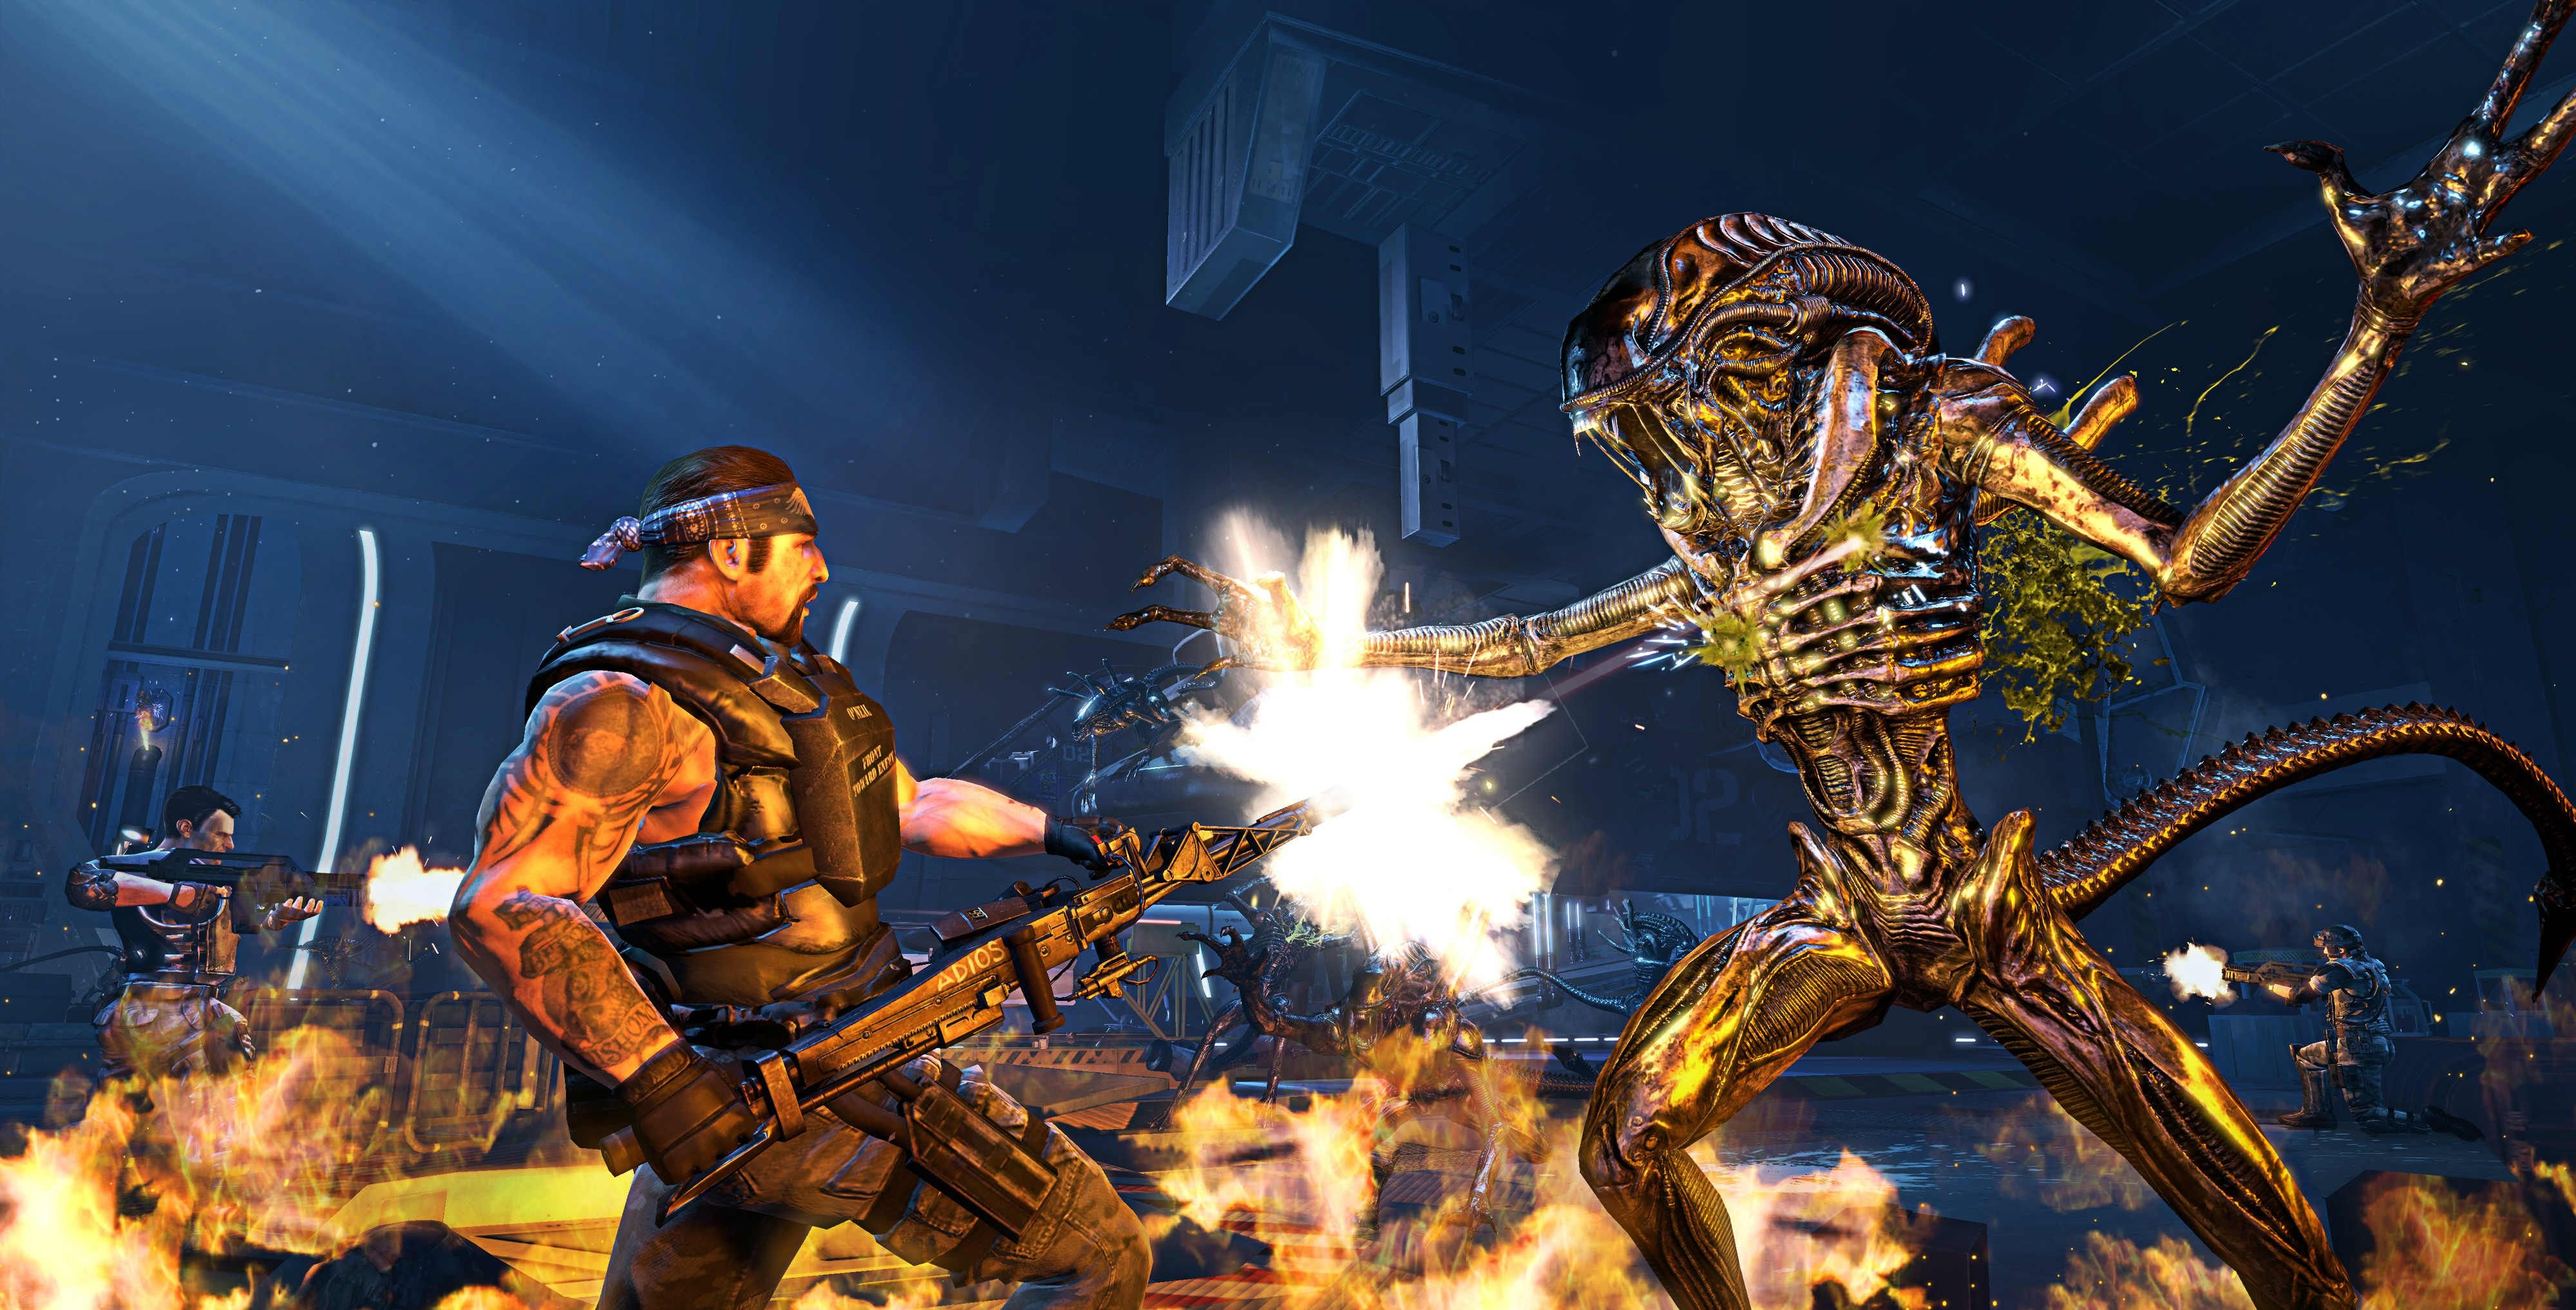 Publicity still for Aliens: Colonial Marines